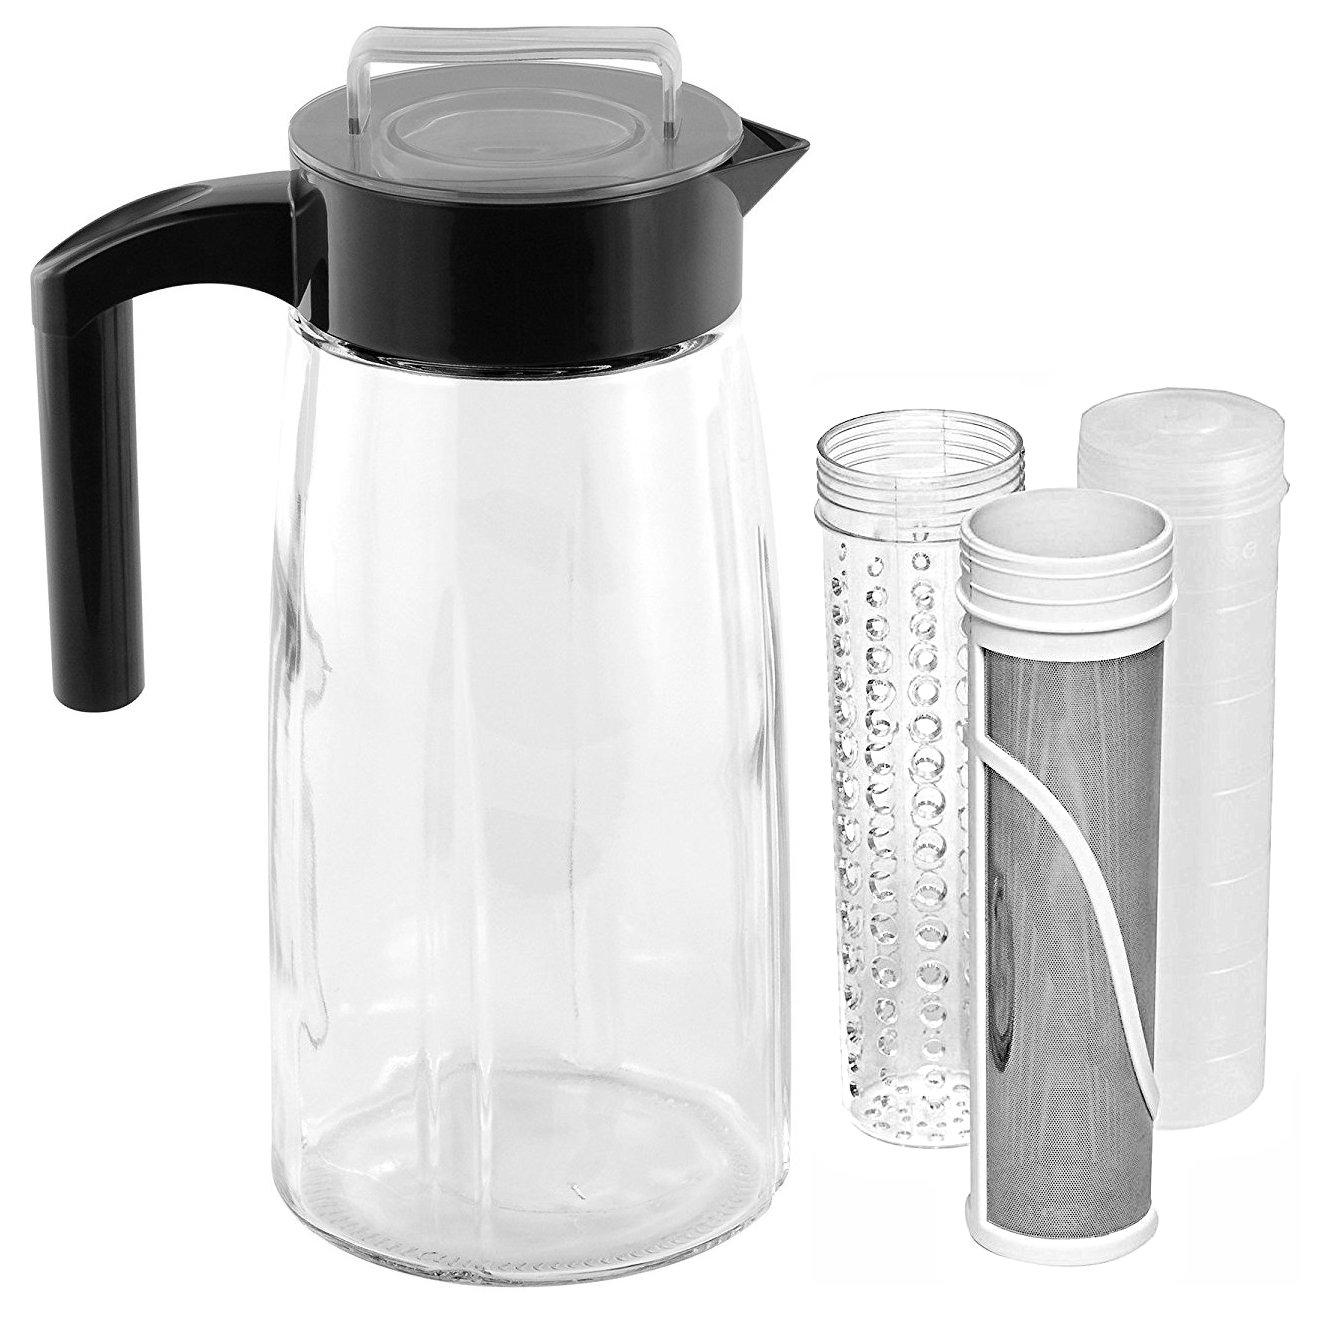 Cooking Upgrades 60oz Glass Cold Brew Coffee Maker and Tea Maker With Ice And Fruit Infuser Inserts Included (Black) by Cooking Upgrades (Image #1)